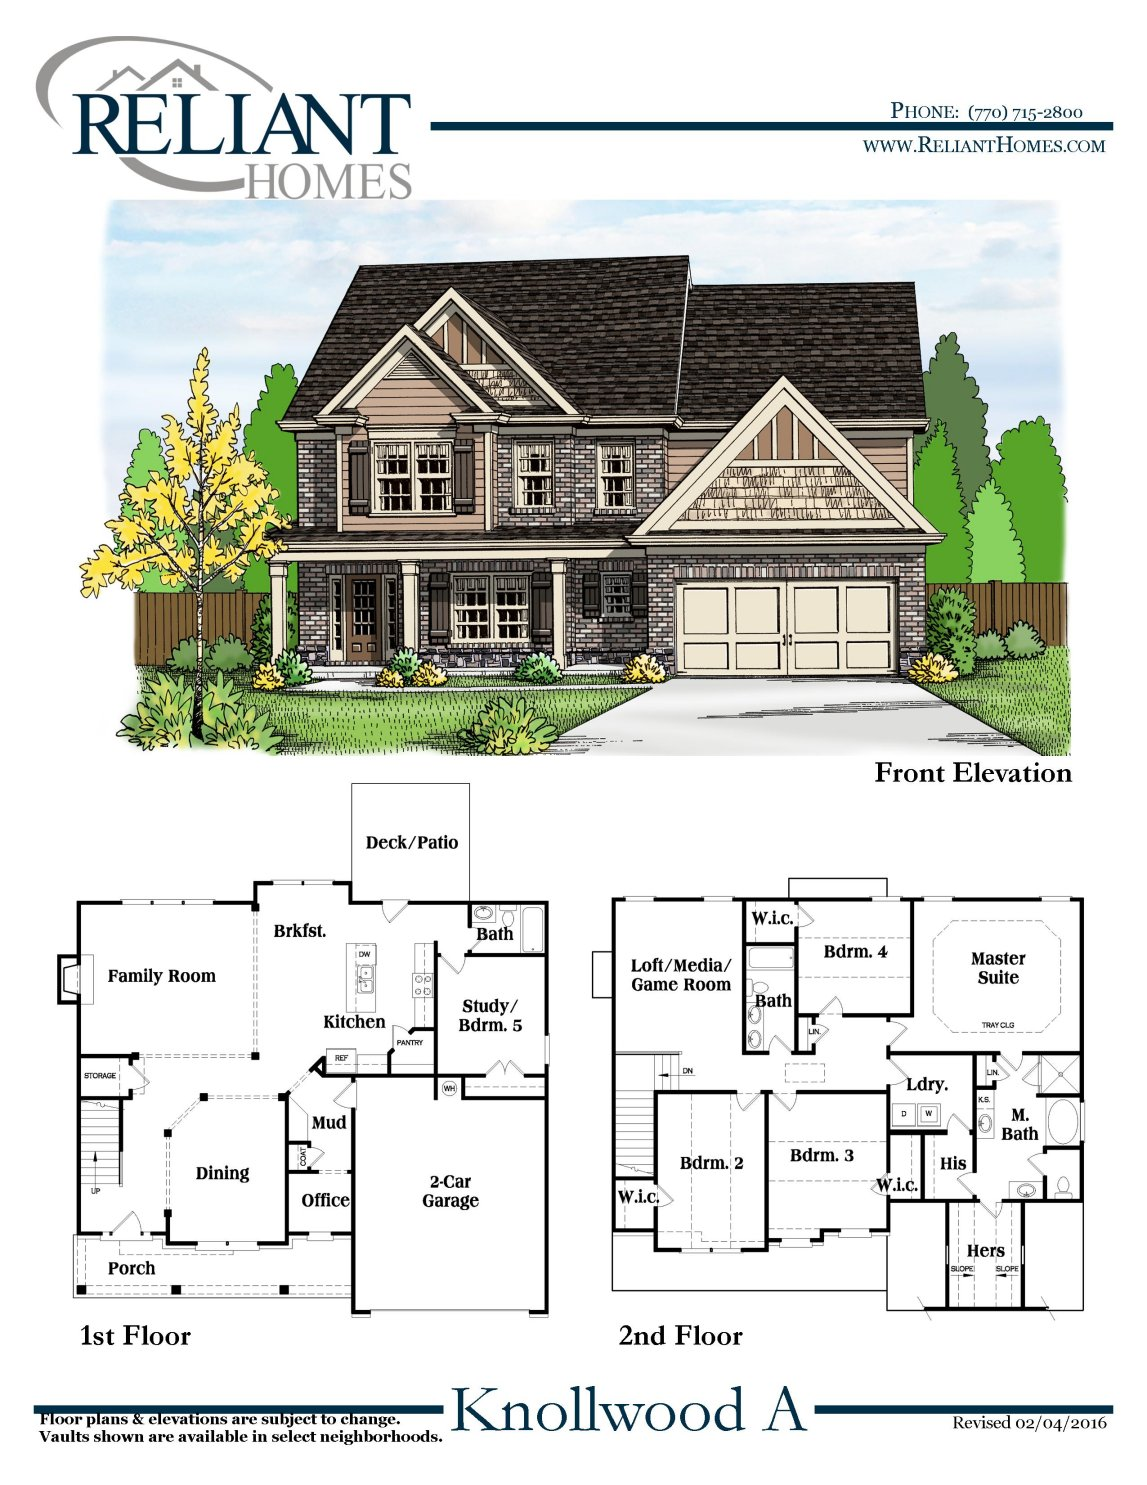 Knollwood a fe reliant homes new homes in atlanta for Suburban house blueprints